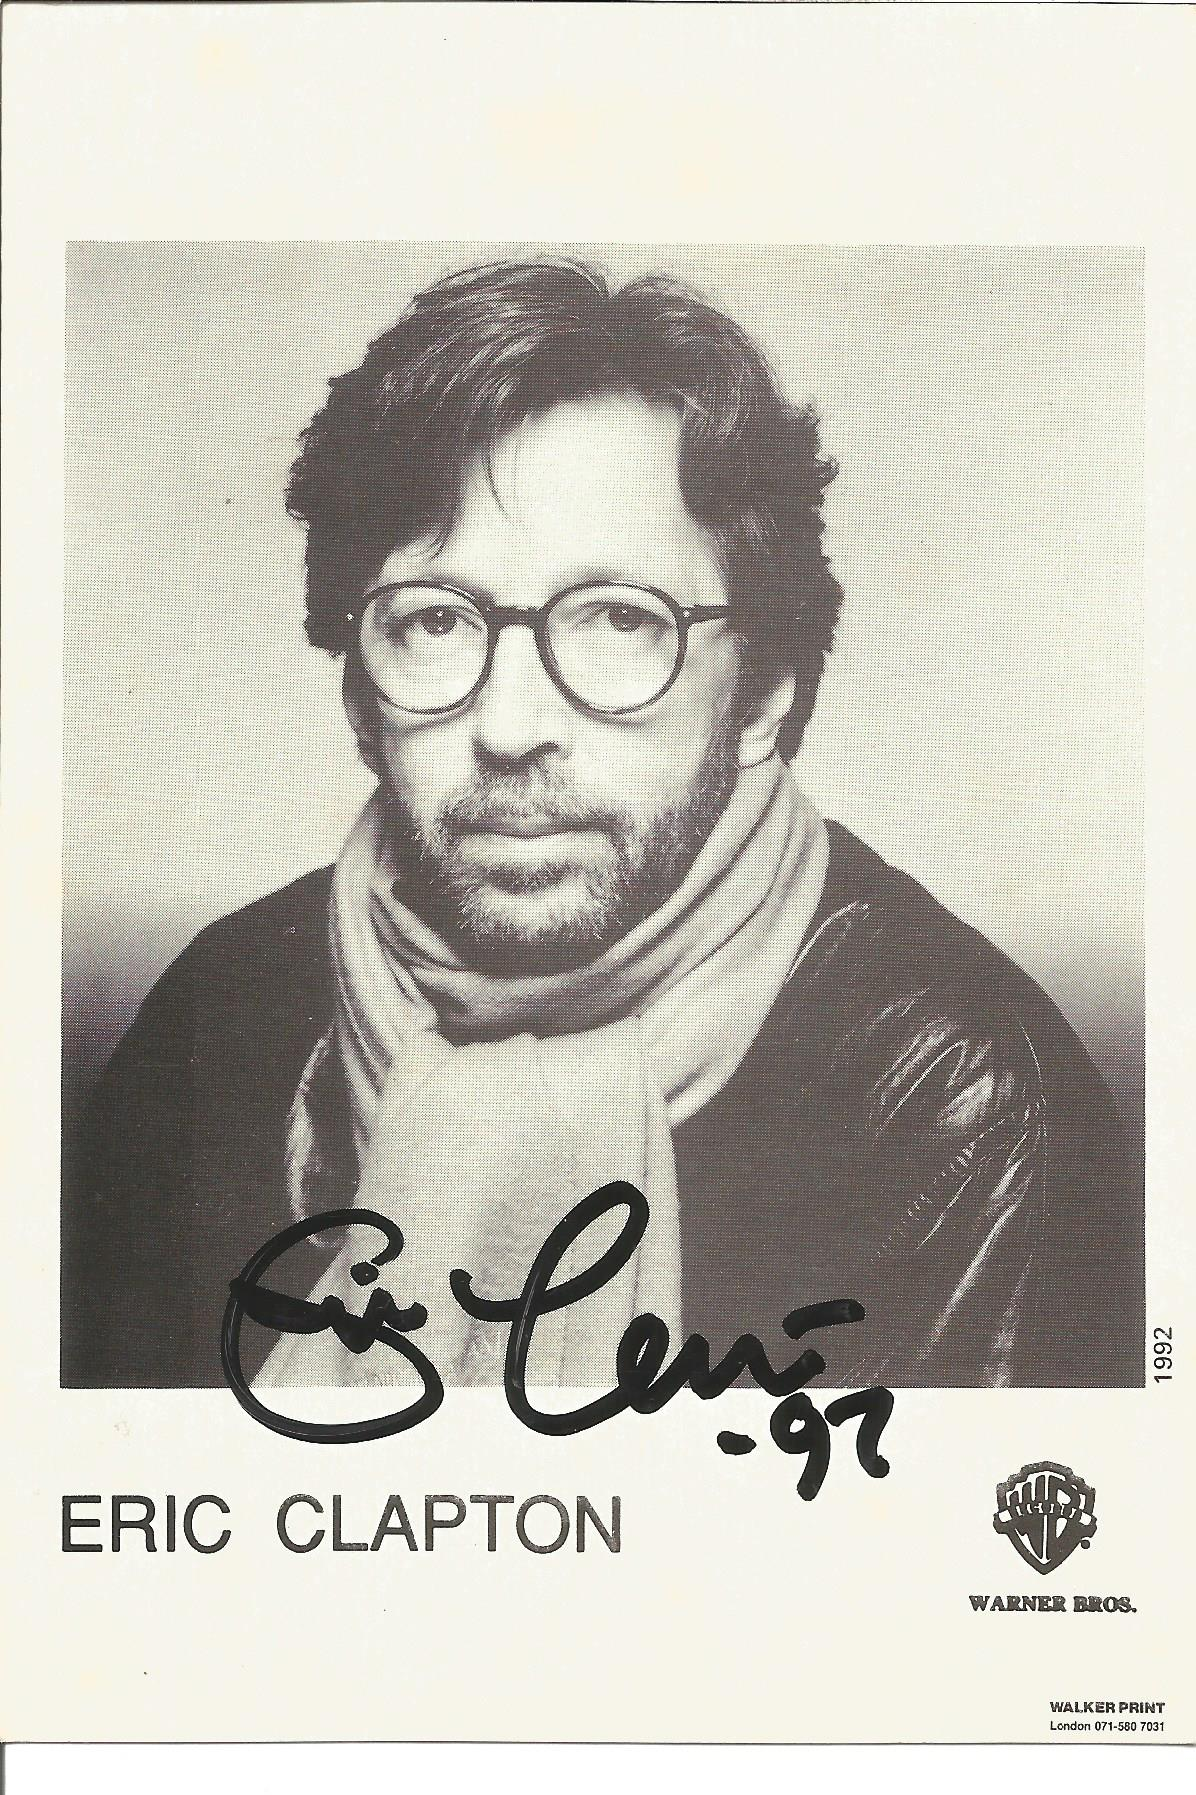 Eric Clapton signed 6x4 black and white promo photo. Good condition. All autographs come with a